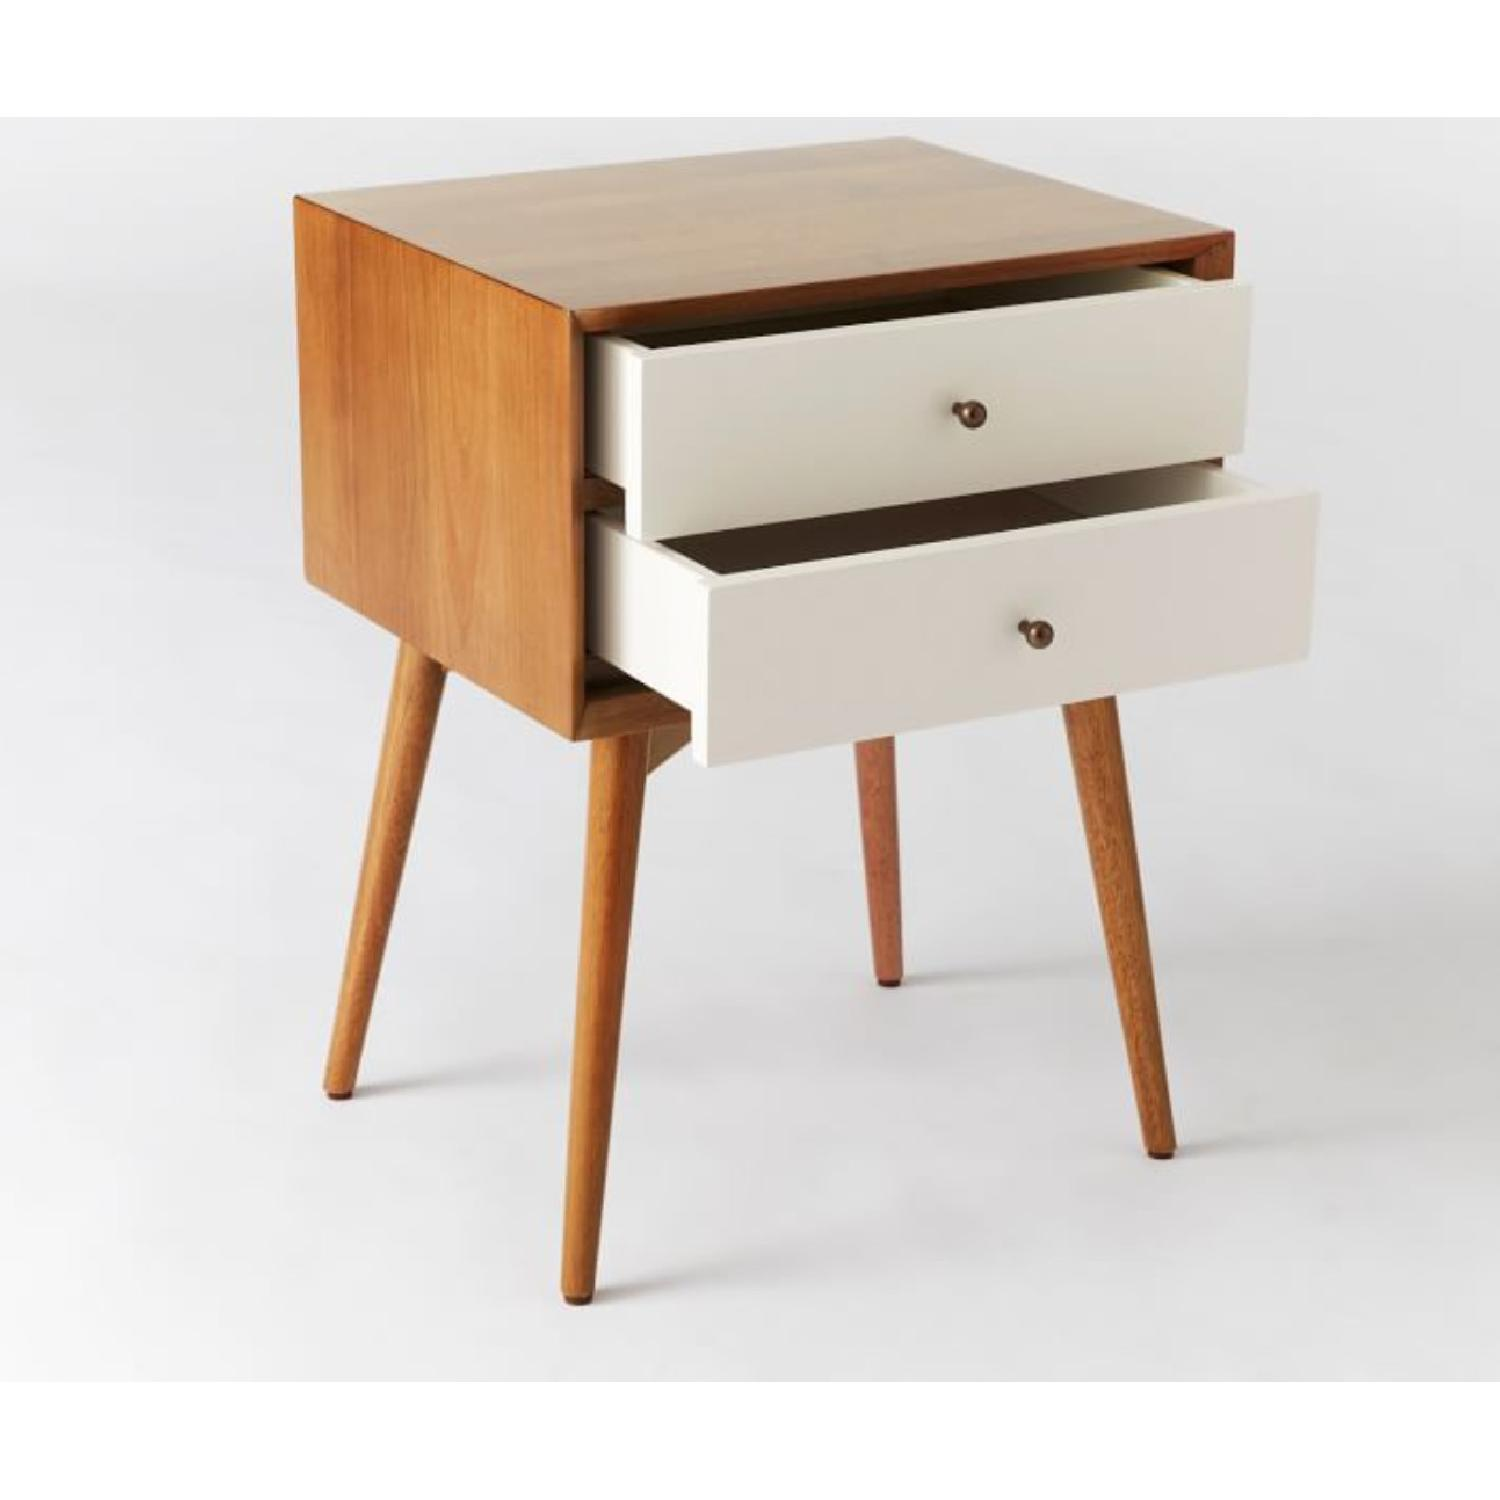 West Elm Mid-Century Nightstand in White Lacquer/Acorn - image-3